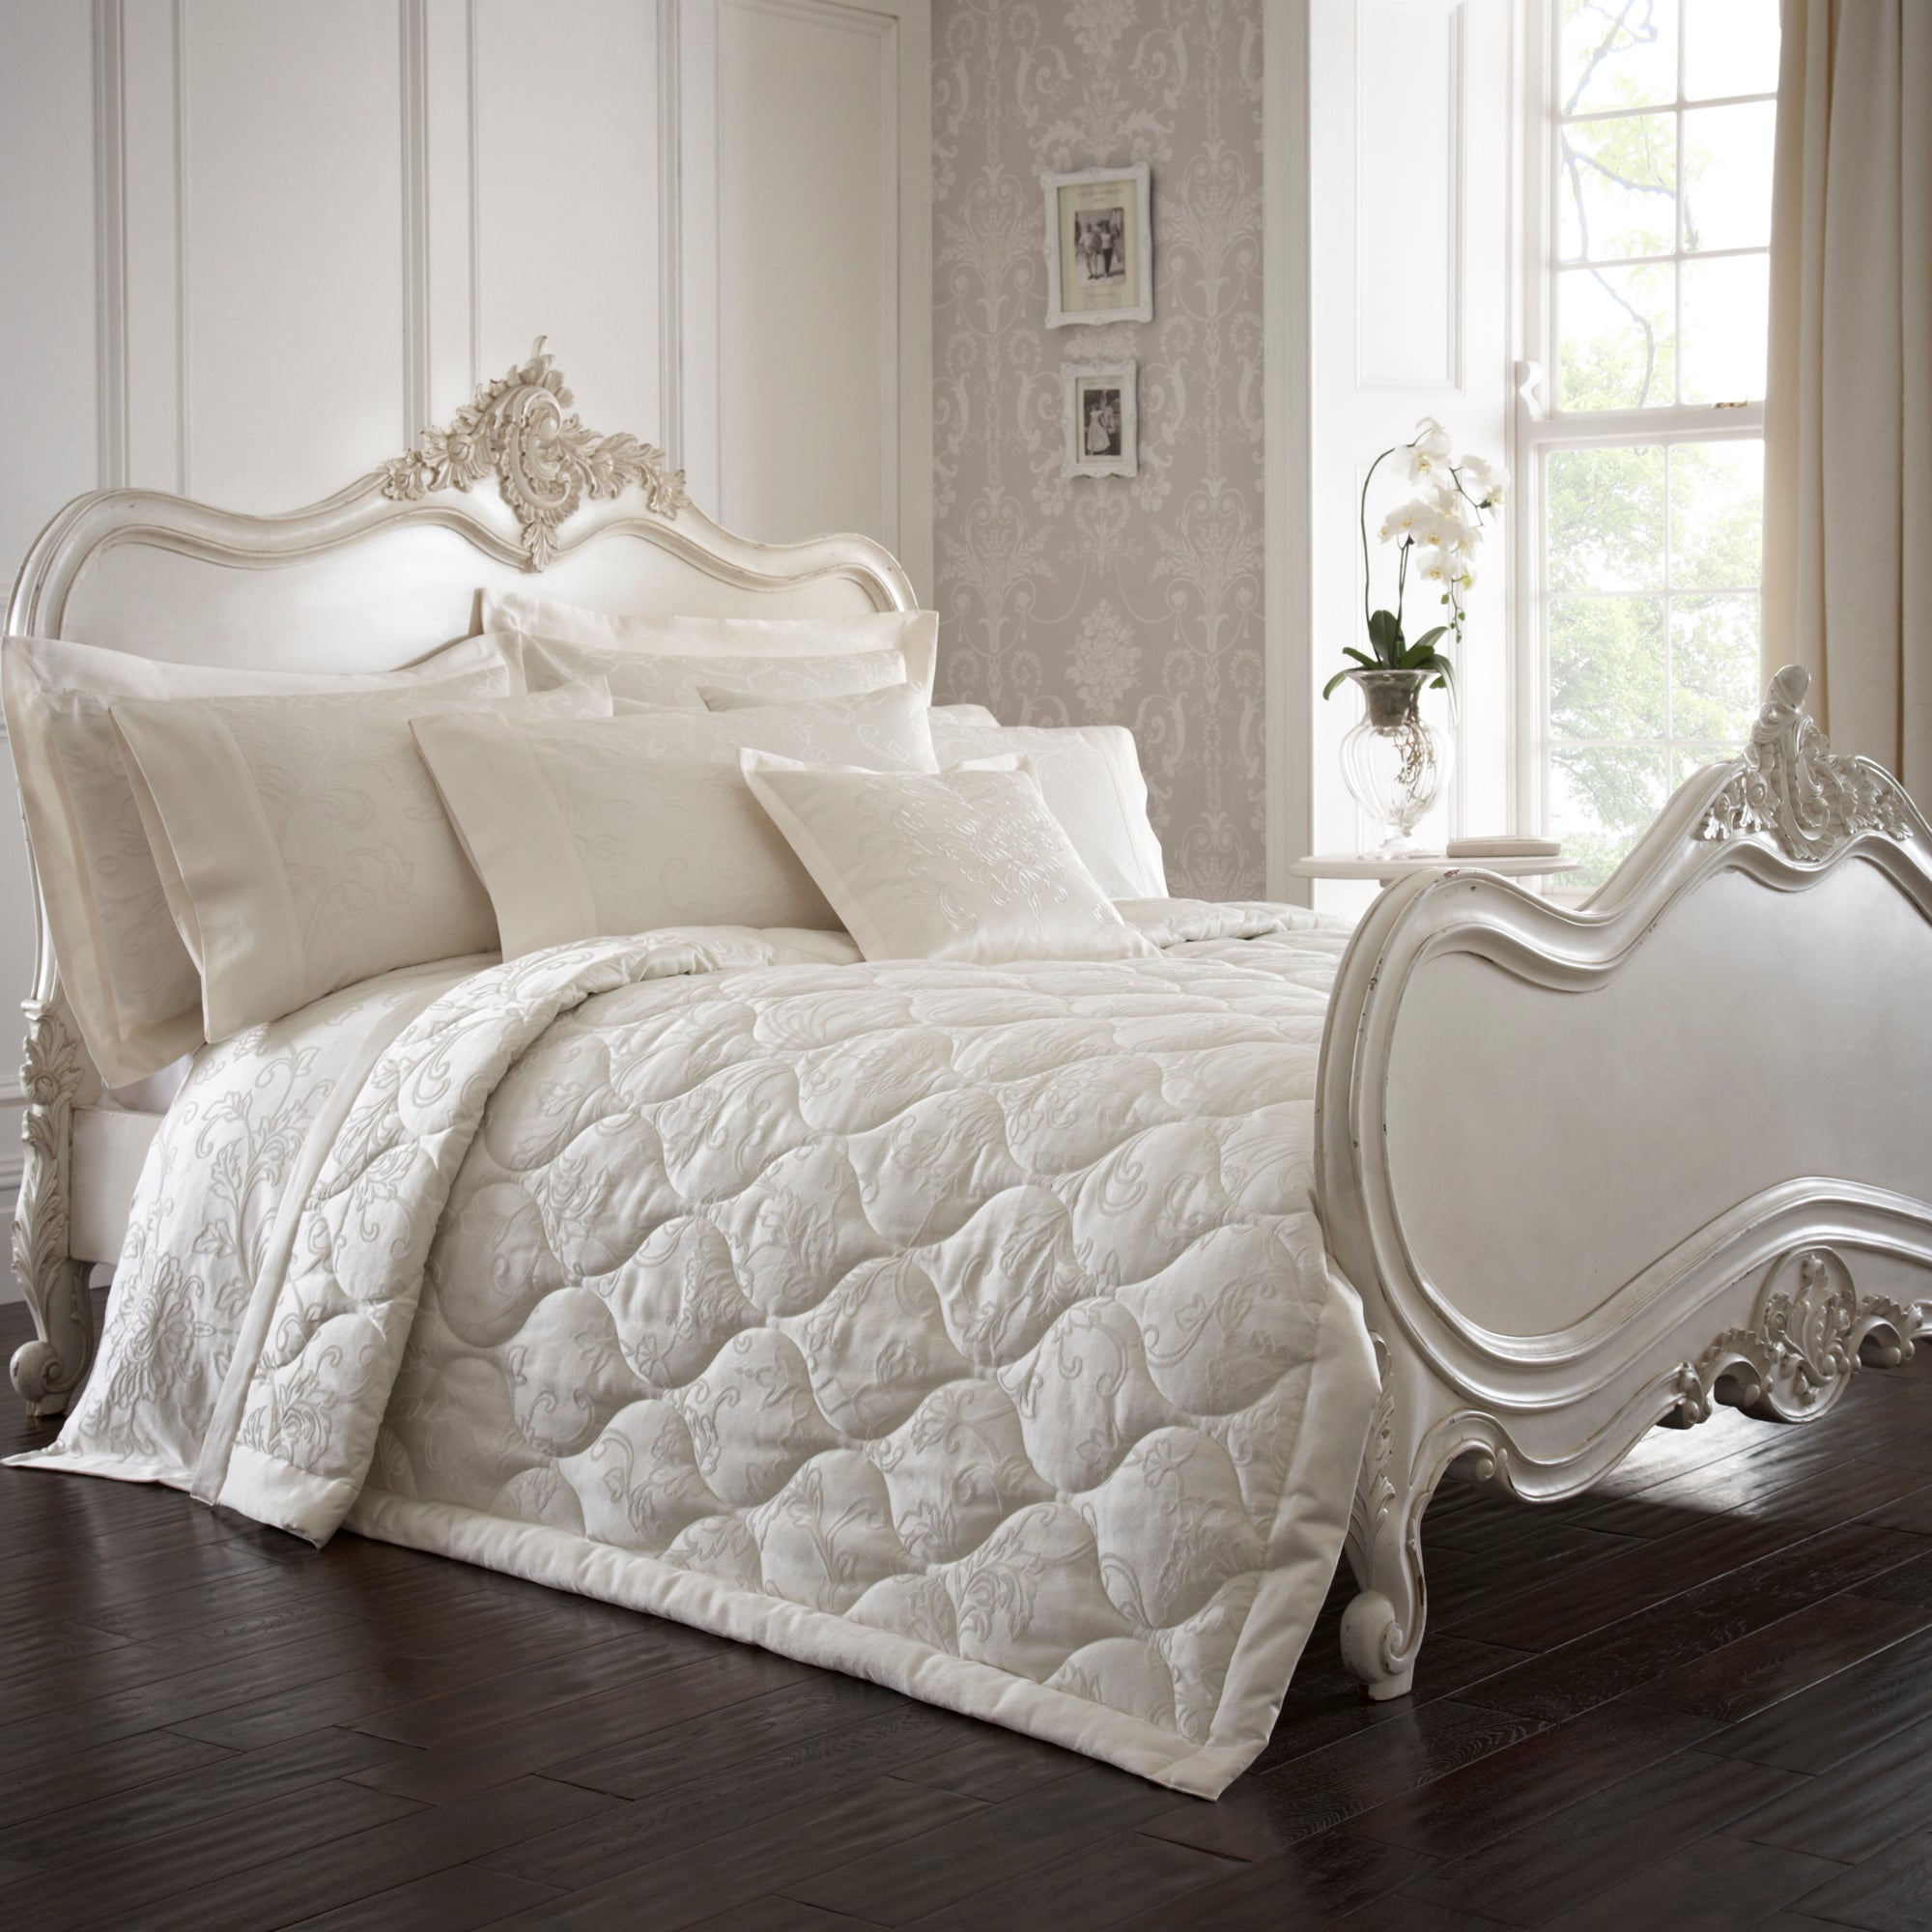 dorma cream pascale collection quilted throw cream at dunelm. Black Bedroom Furniture Sets. Home Design Ideas